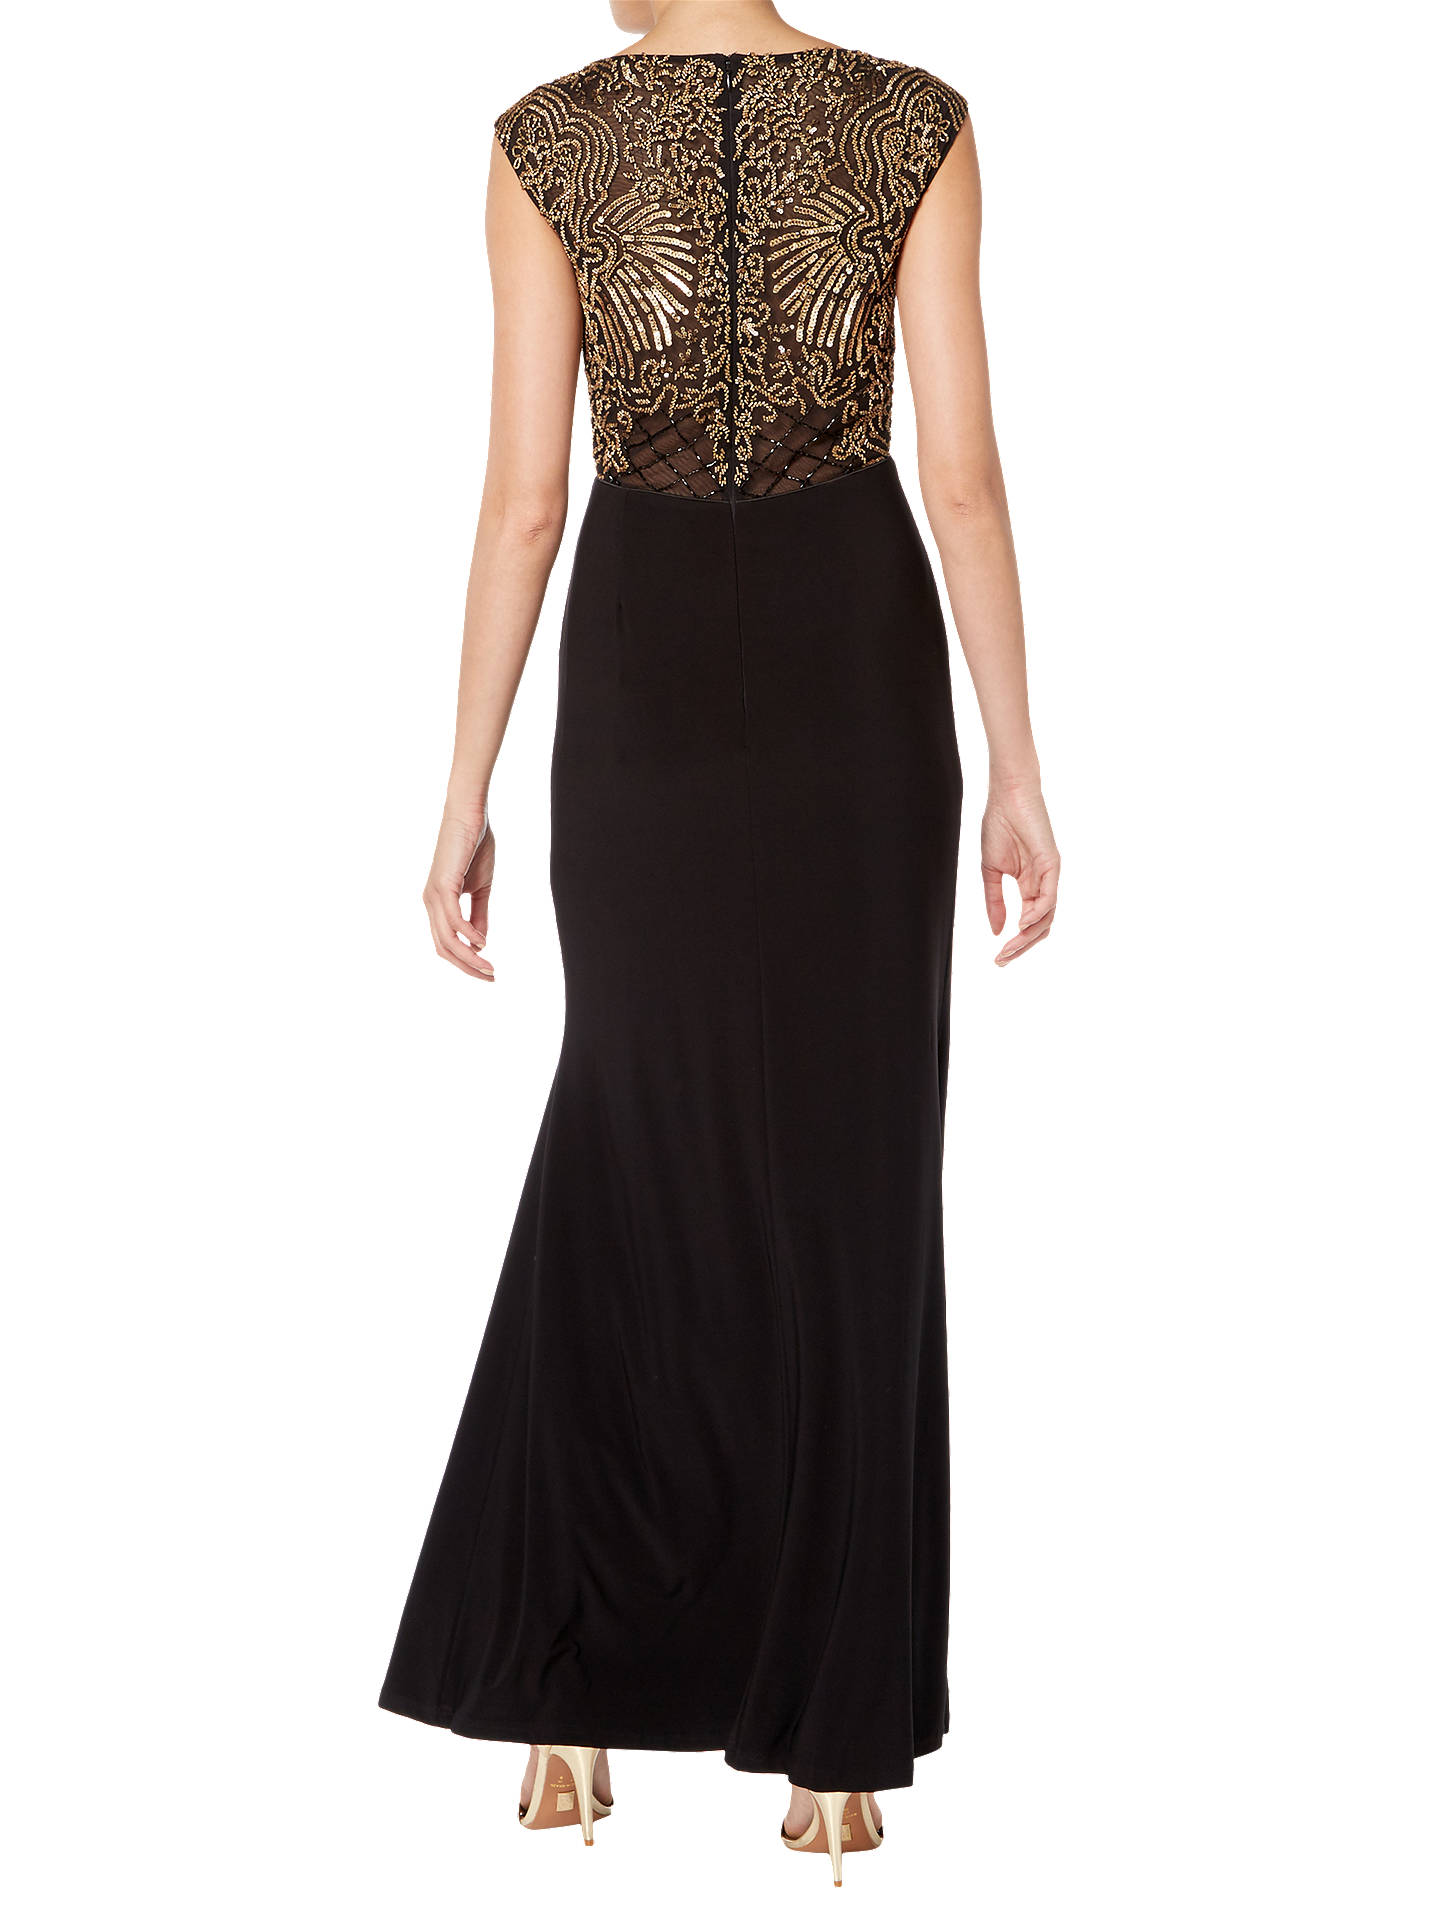 BuyRaishma Embellished Maxi Gown, Black, 8 Online at johnlewis.com